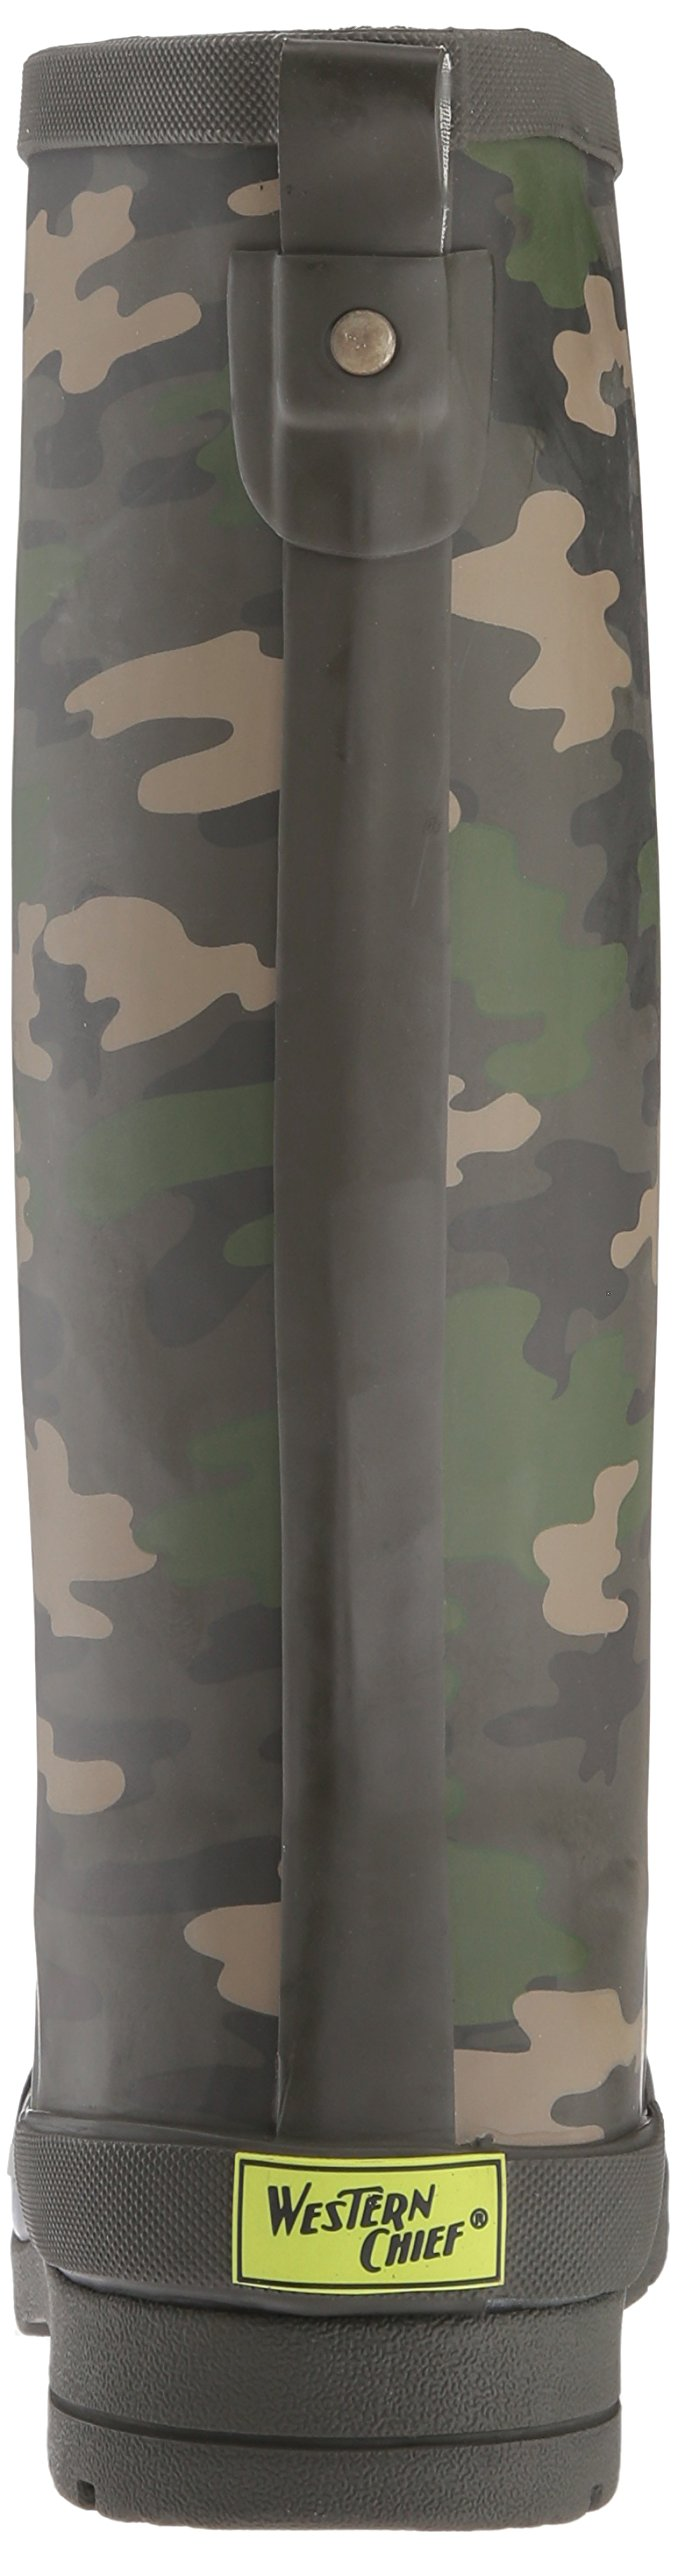 Western Chief Boys Waterproof Classic Youth size Rain Boots, Camo Green, 13 M US Little Kid by Western Chief (Image #2)